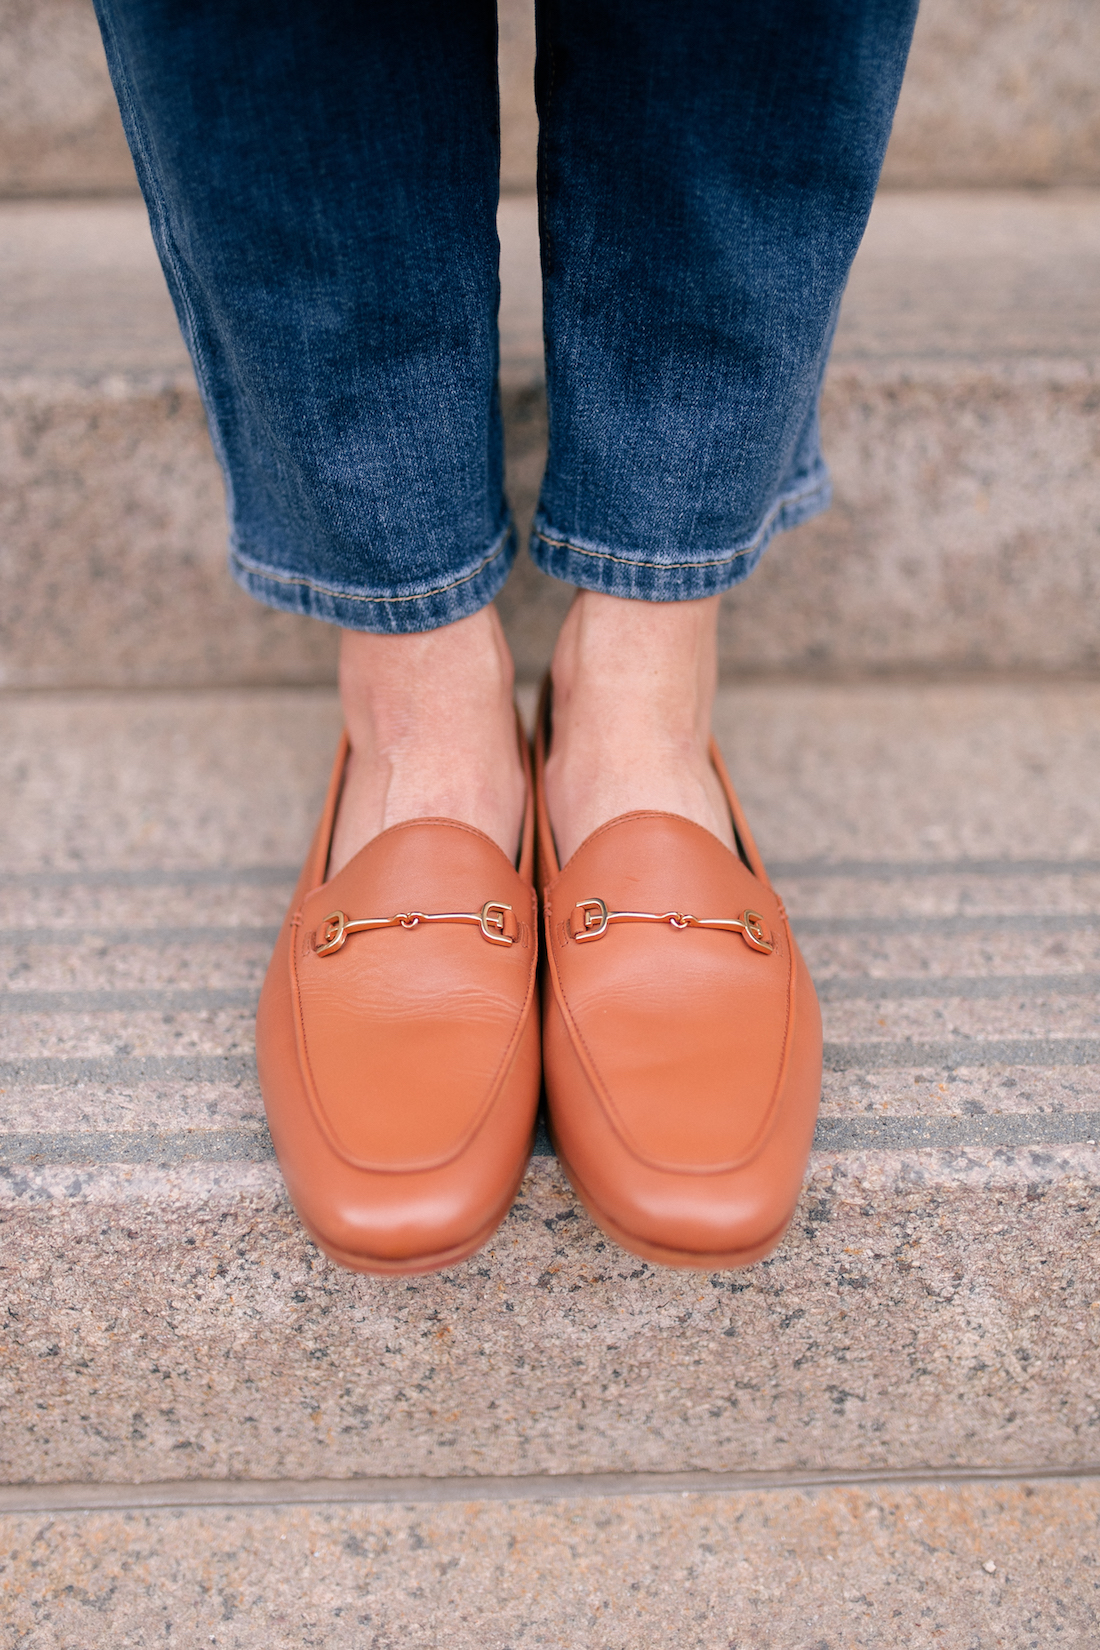 loafers that are suede are affordable shoes for fall